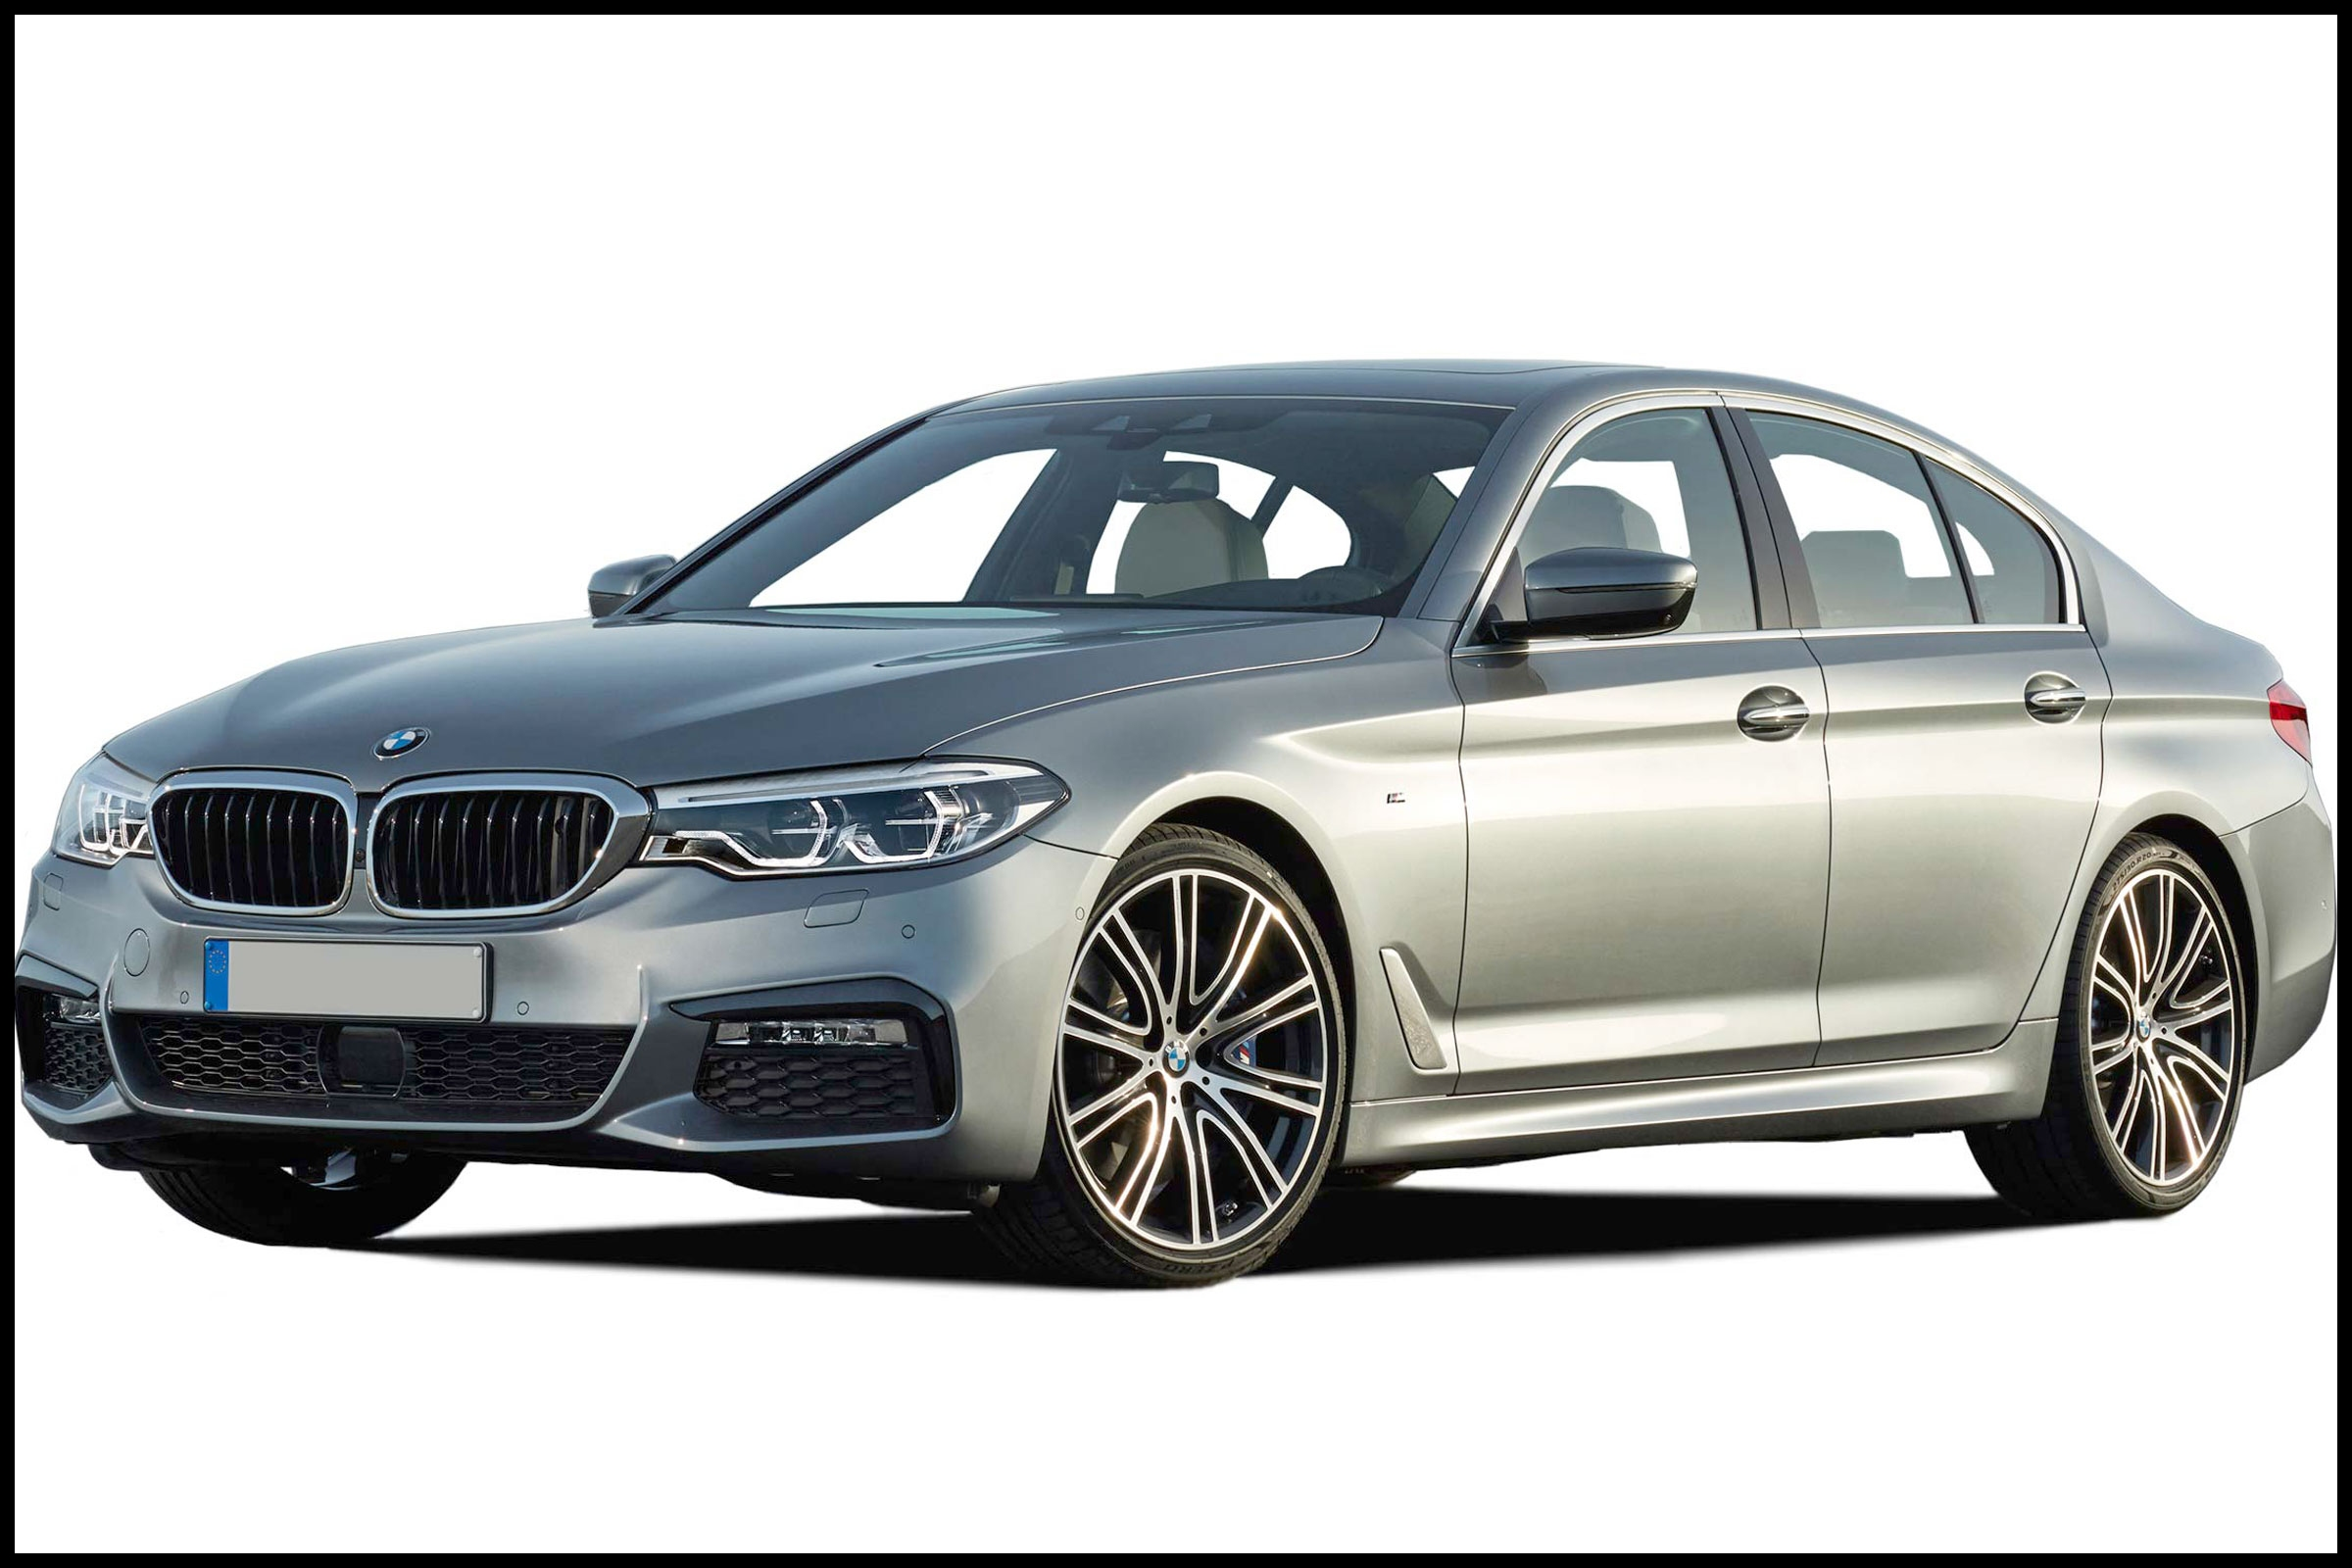 bmw 5 series cutout 0